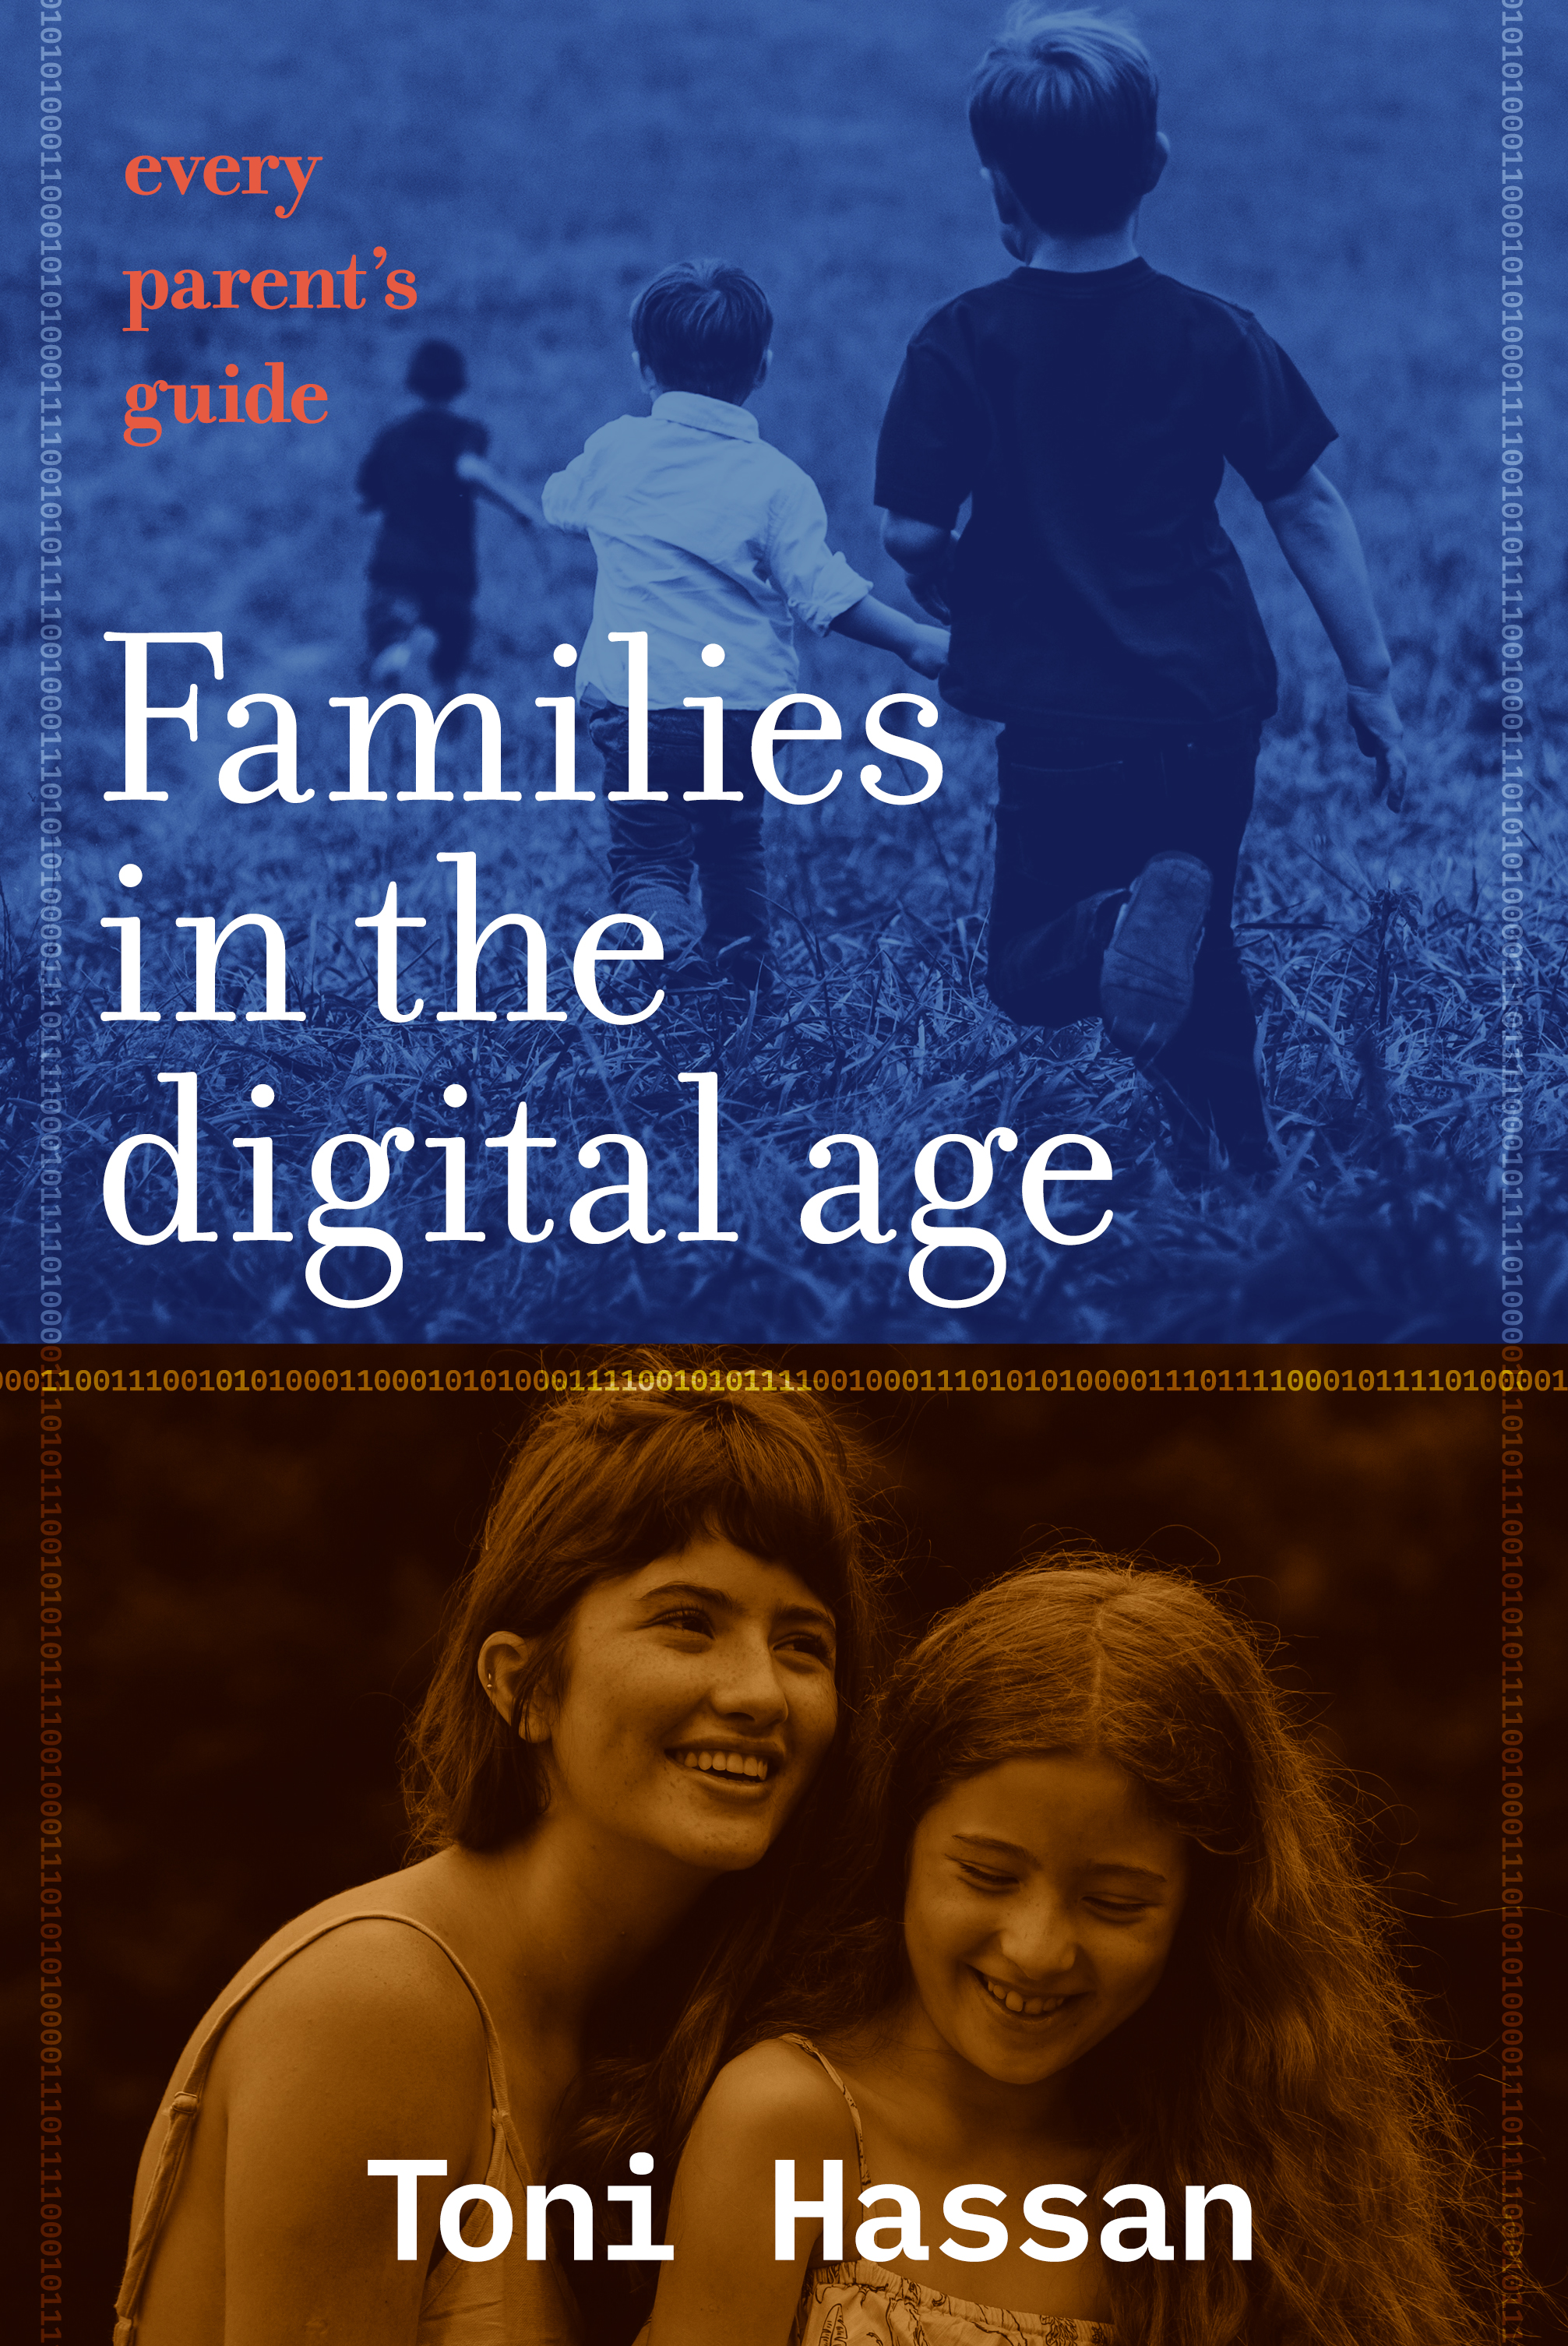 Families in the Digital Age_Cover 05.jpg